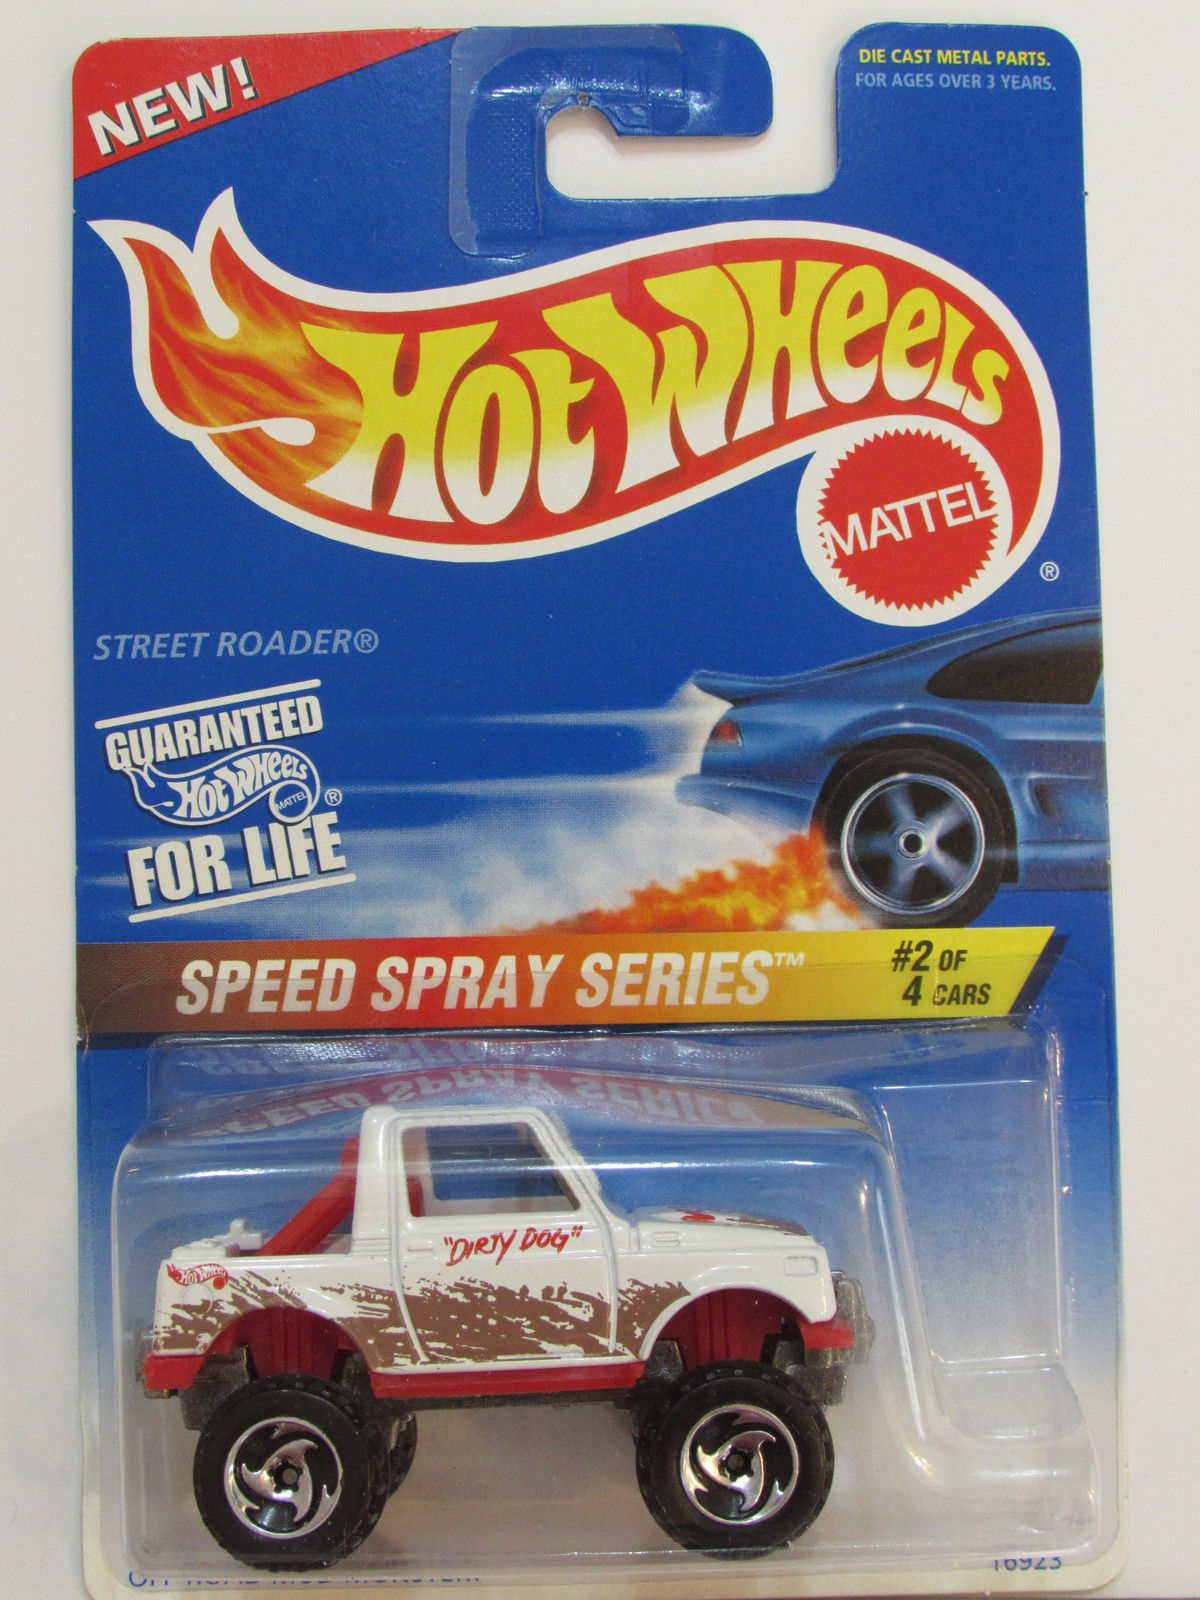 HOT WHEELS 1996 SPEED SPRAY SERIES STREET ROADER #2/4